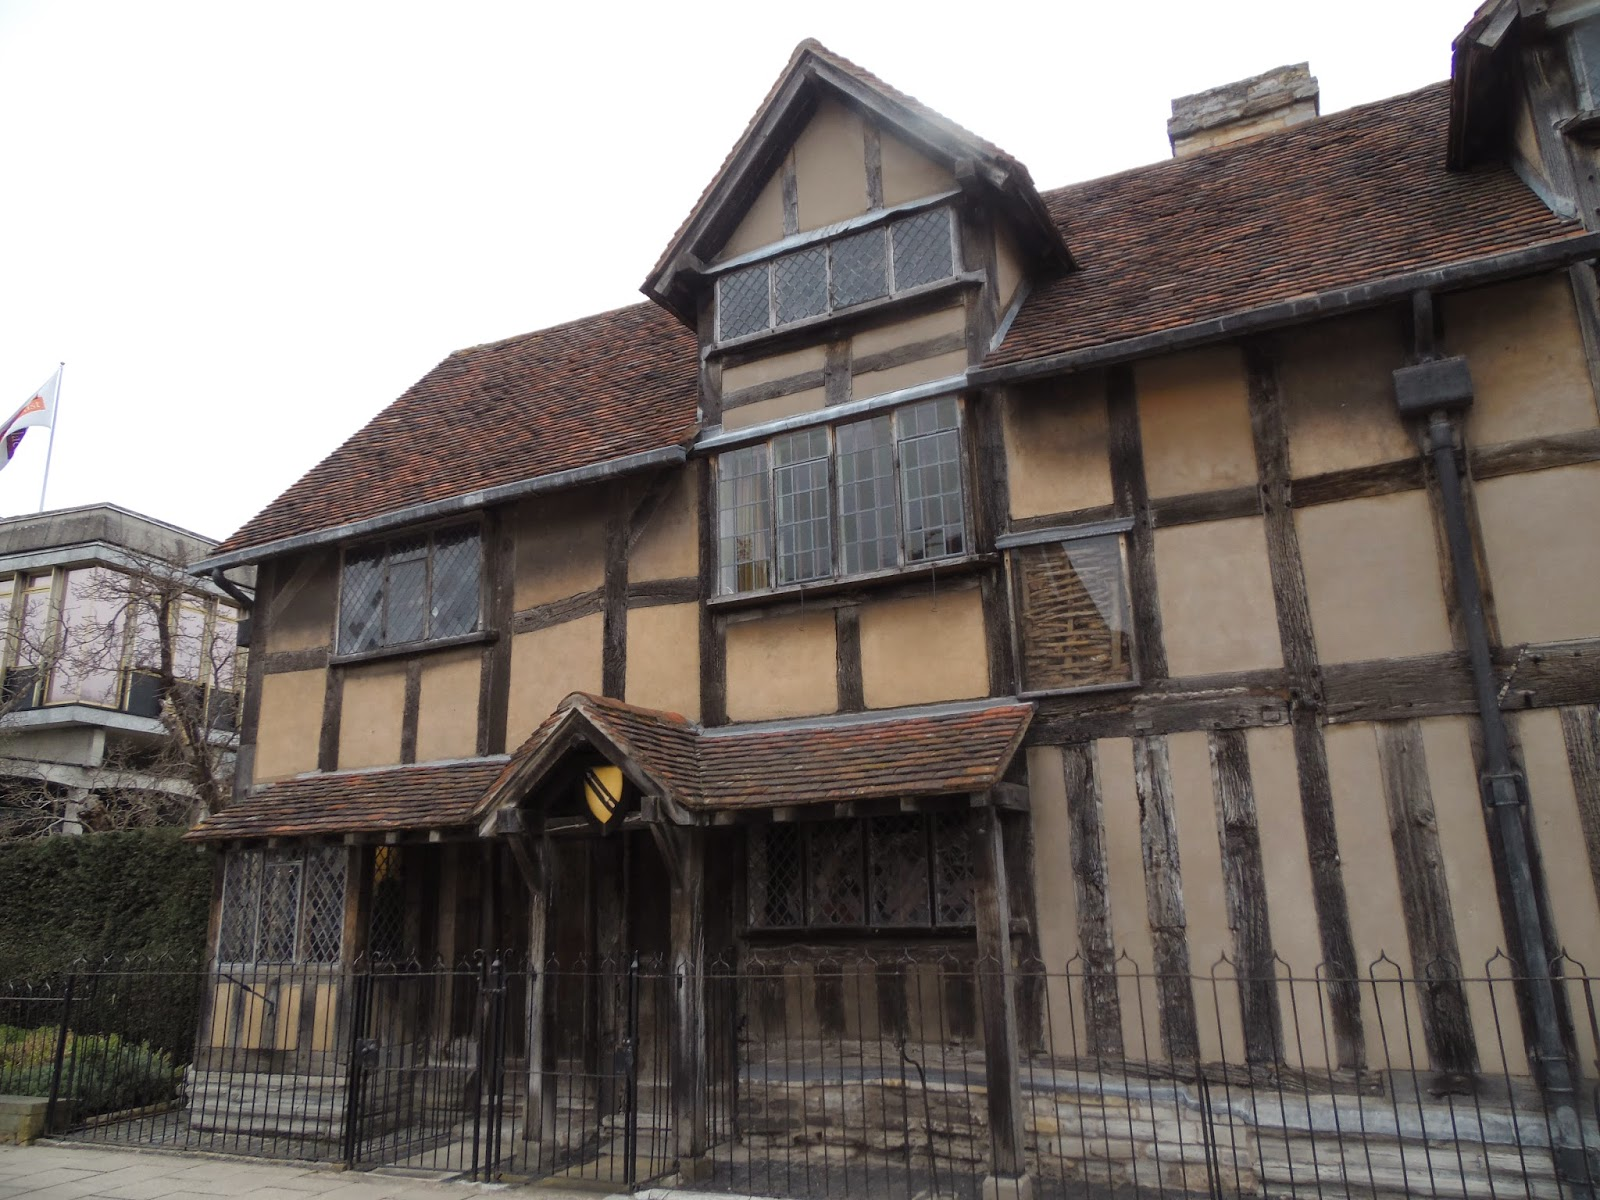 A day in Shakespeare's place